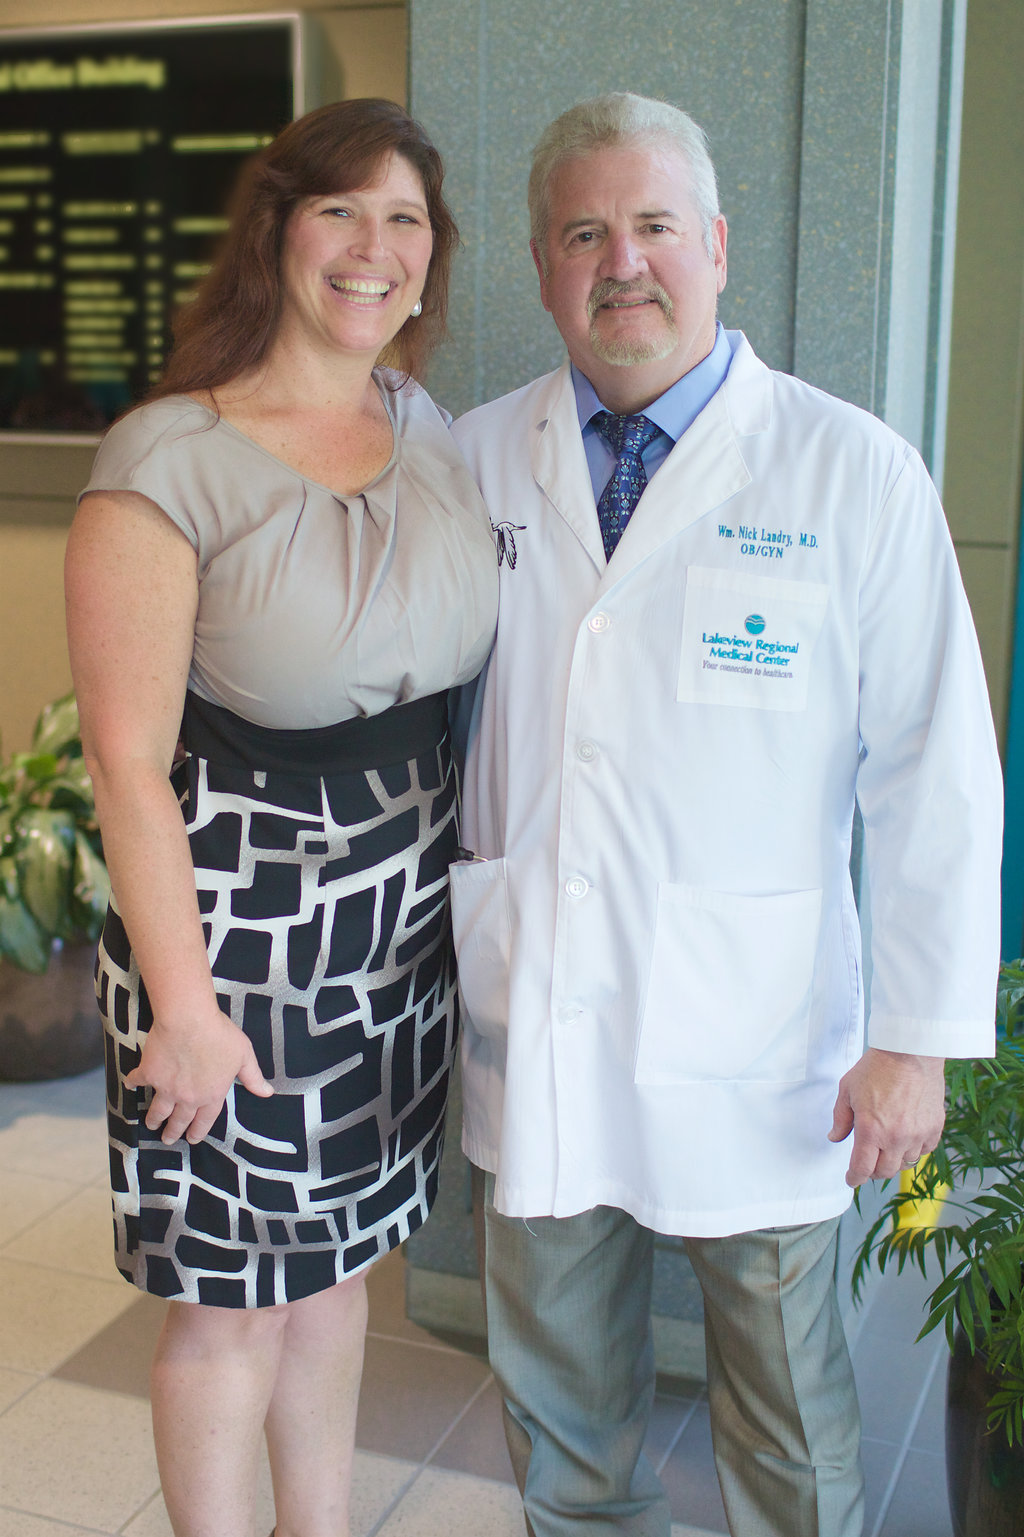 Dr. Nick Landry and his wife, Kelo